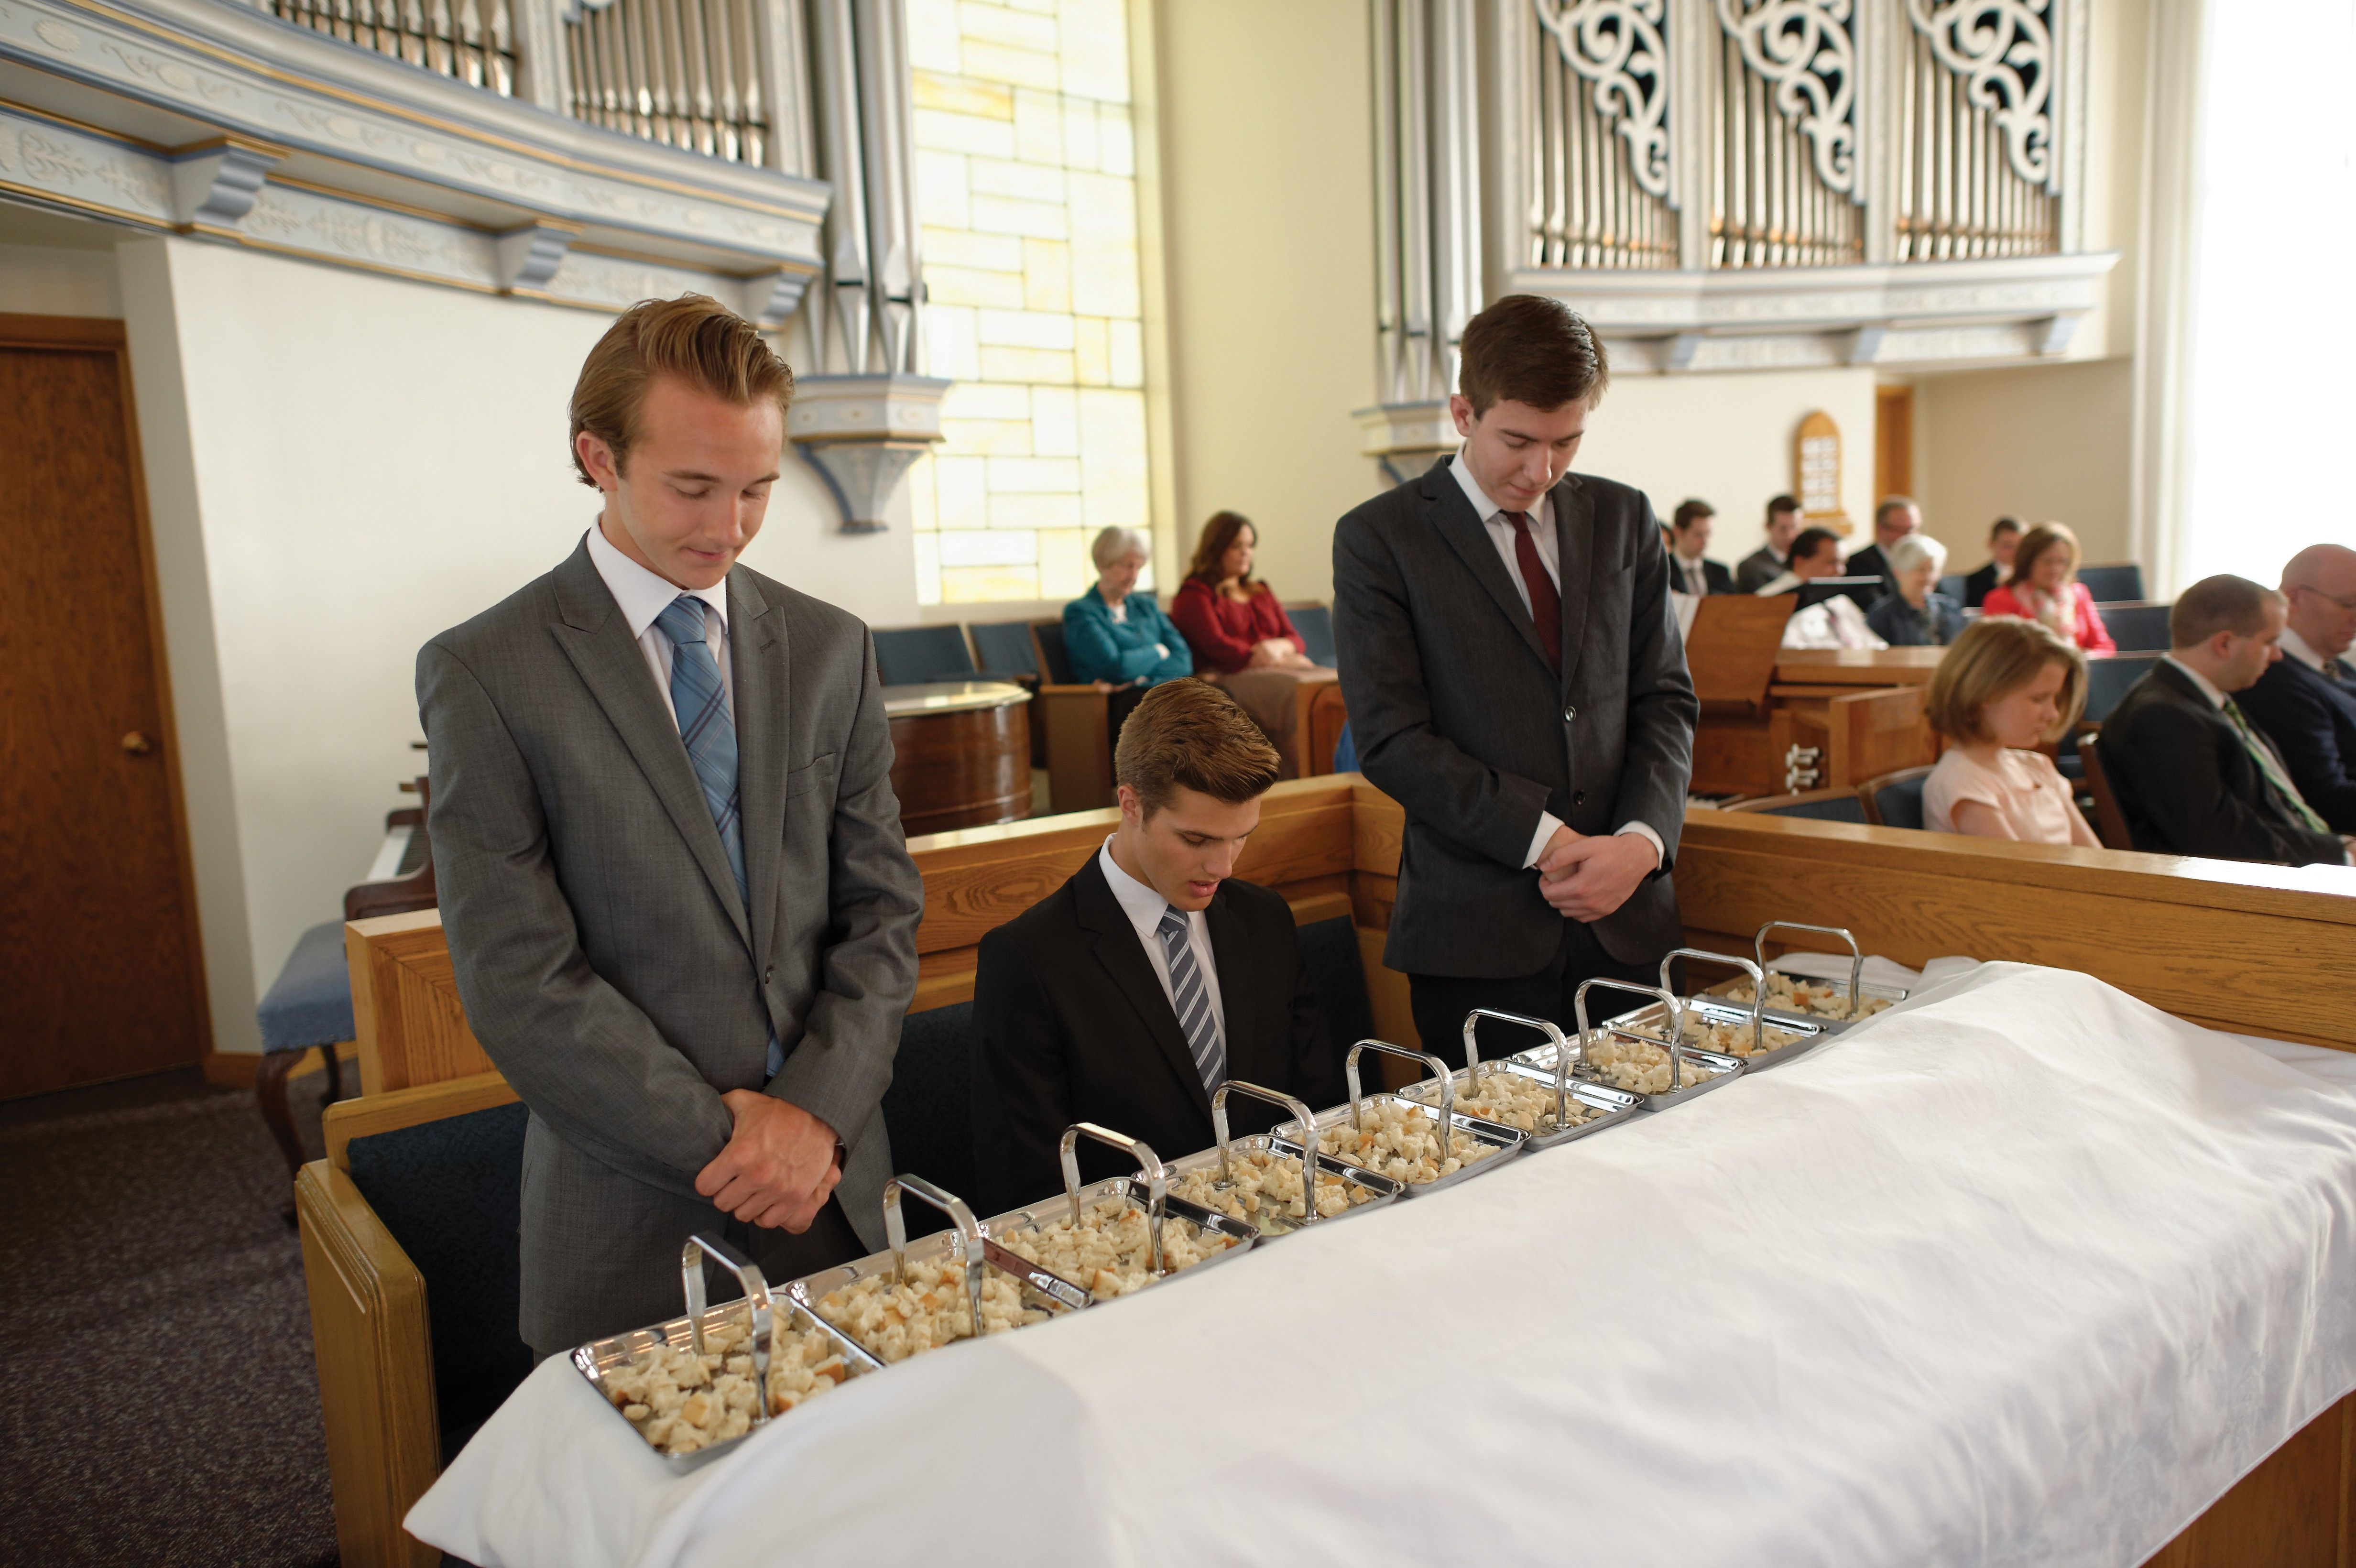 Three young men blessing the sacrament bread for the congregation.